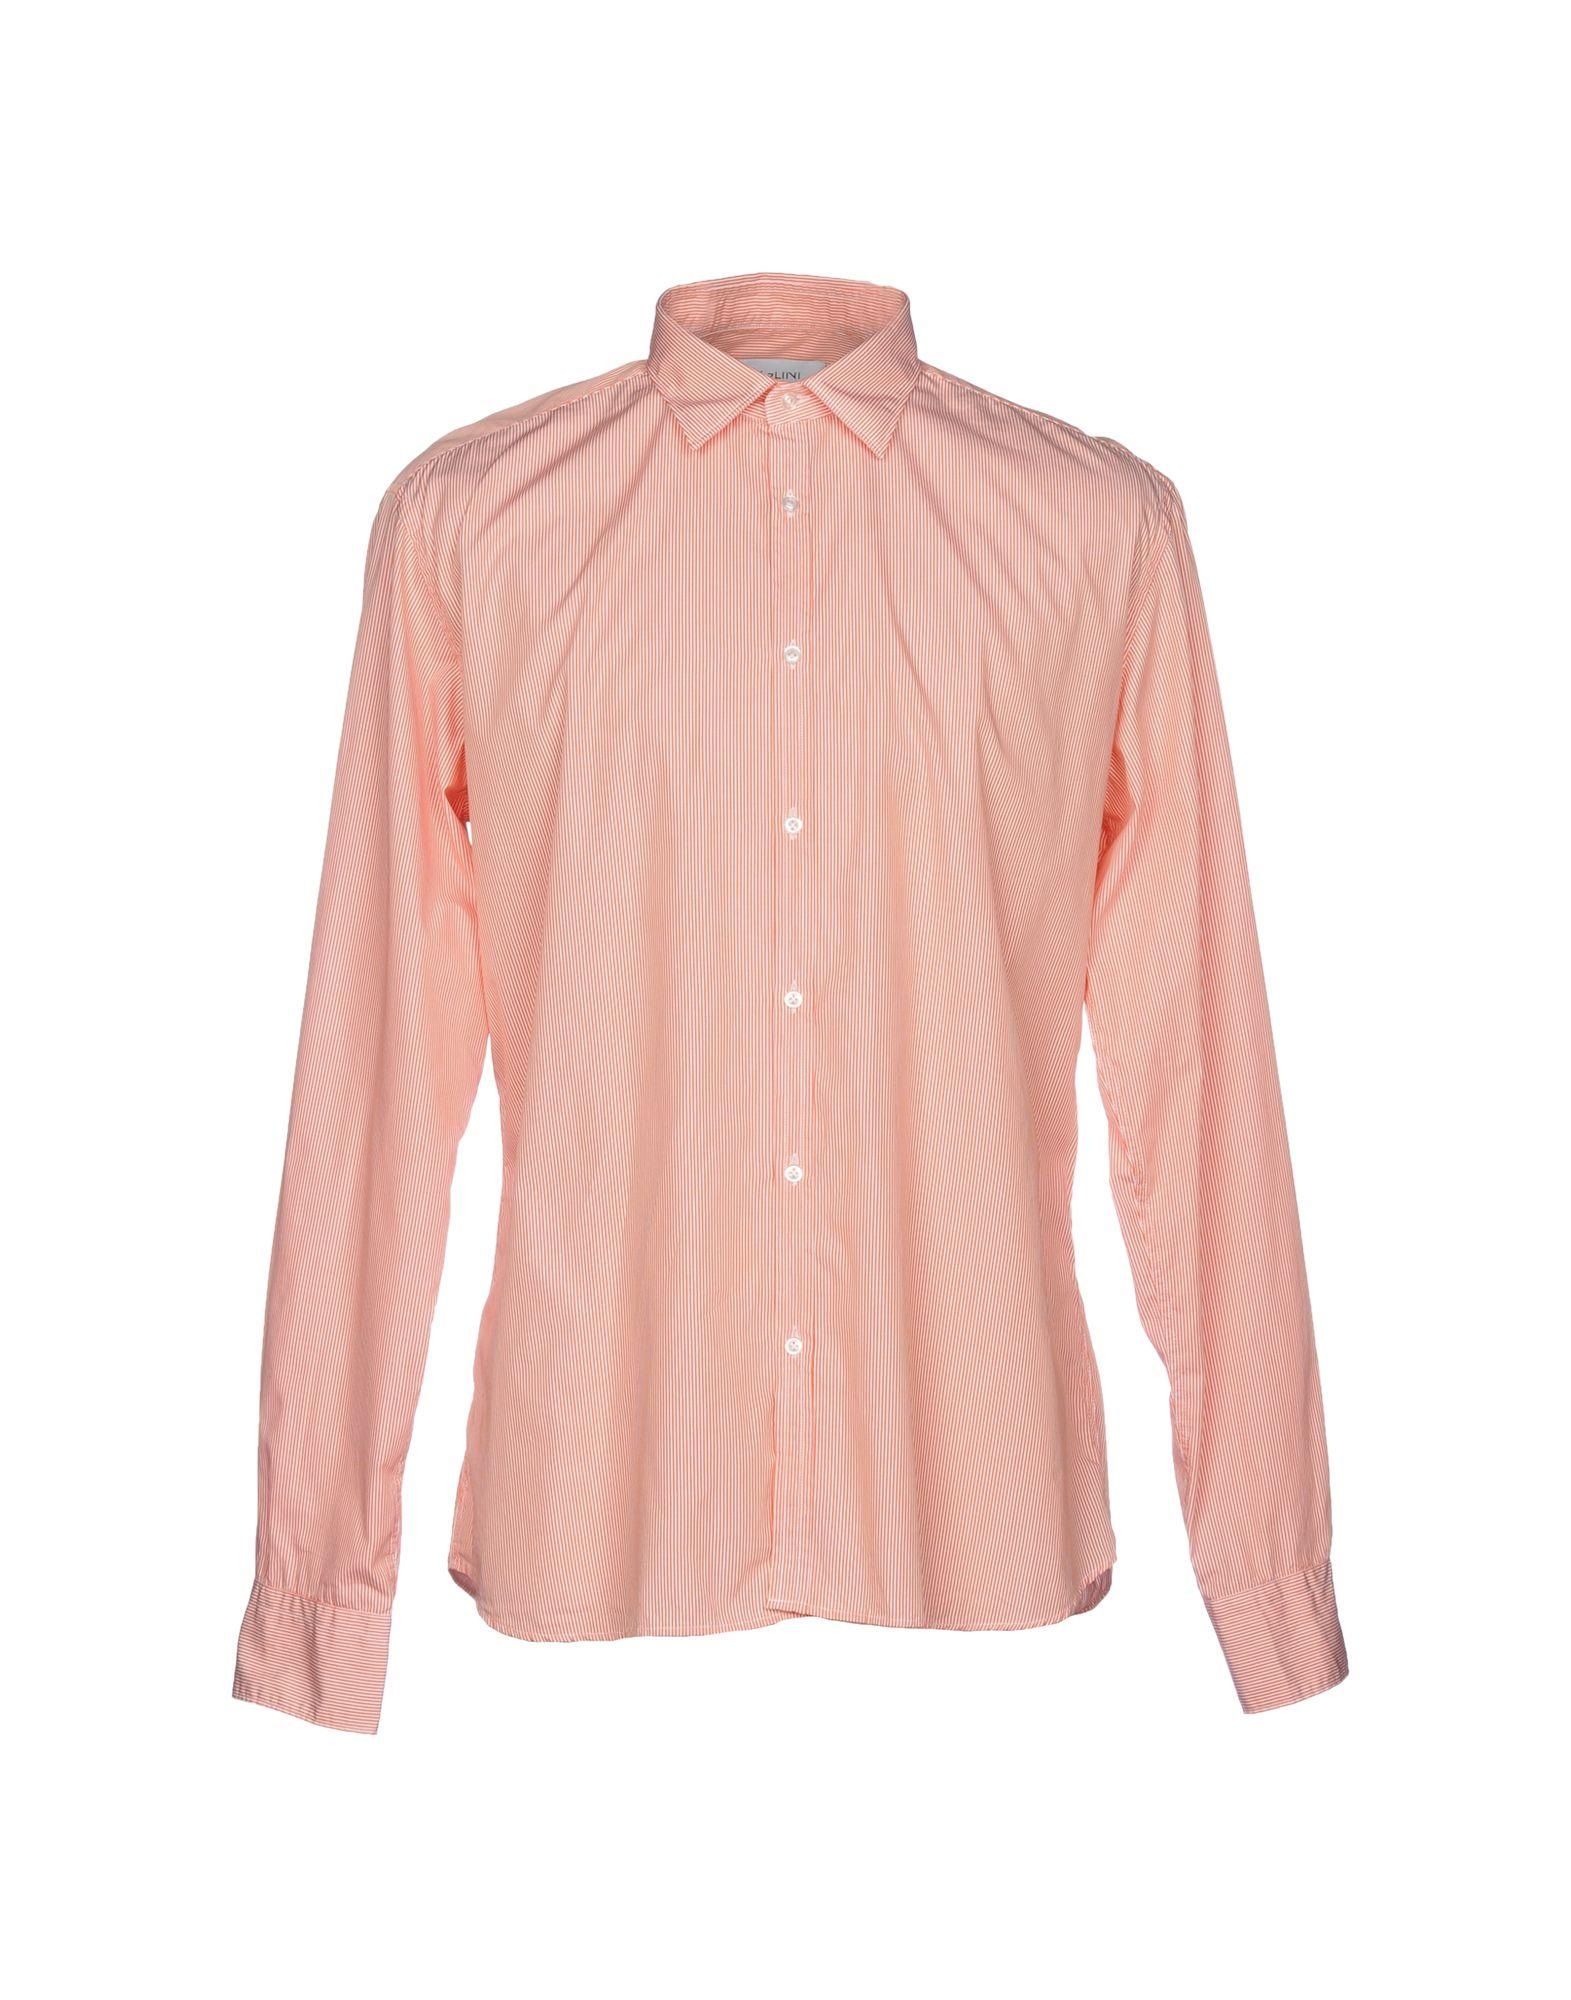 ufficiale stile unico outlet Shirts in Salmon Pink